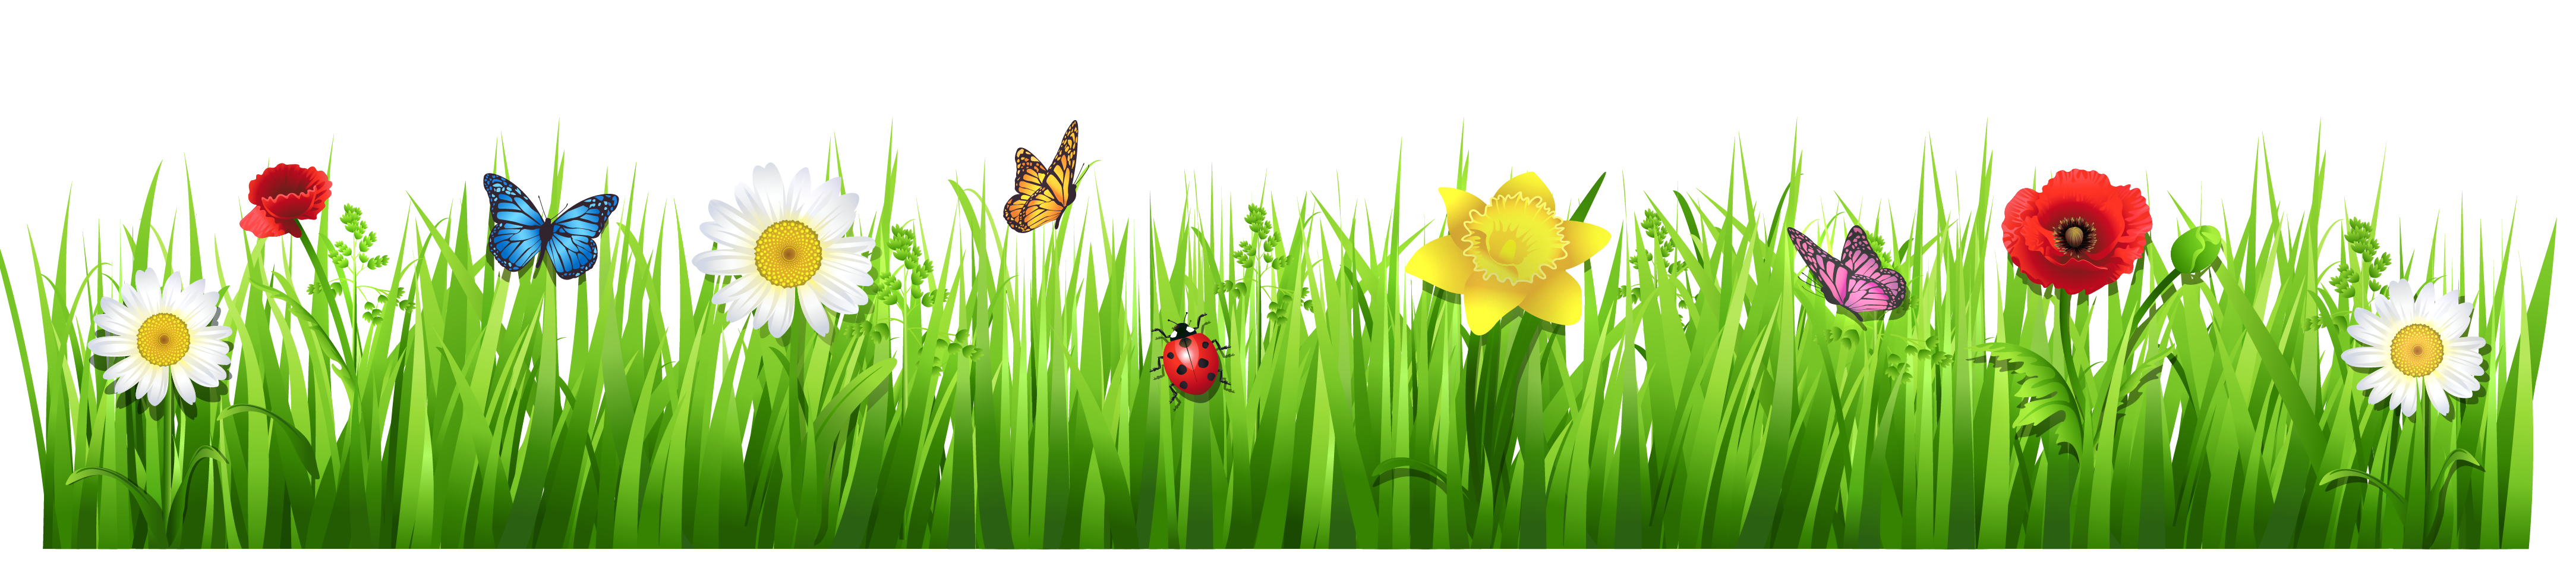 Garden clipart nature. Png projects to try